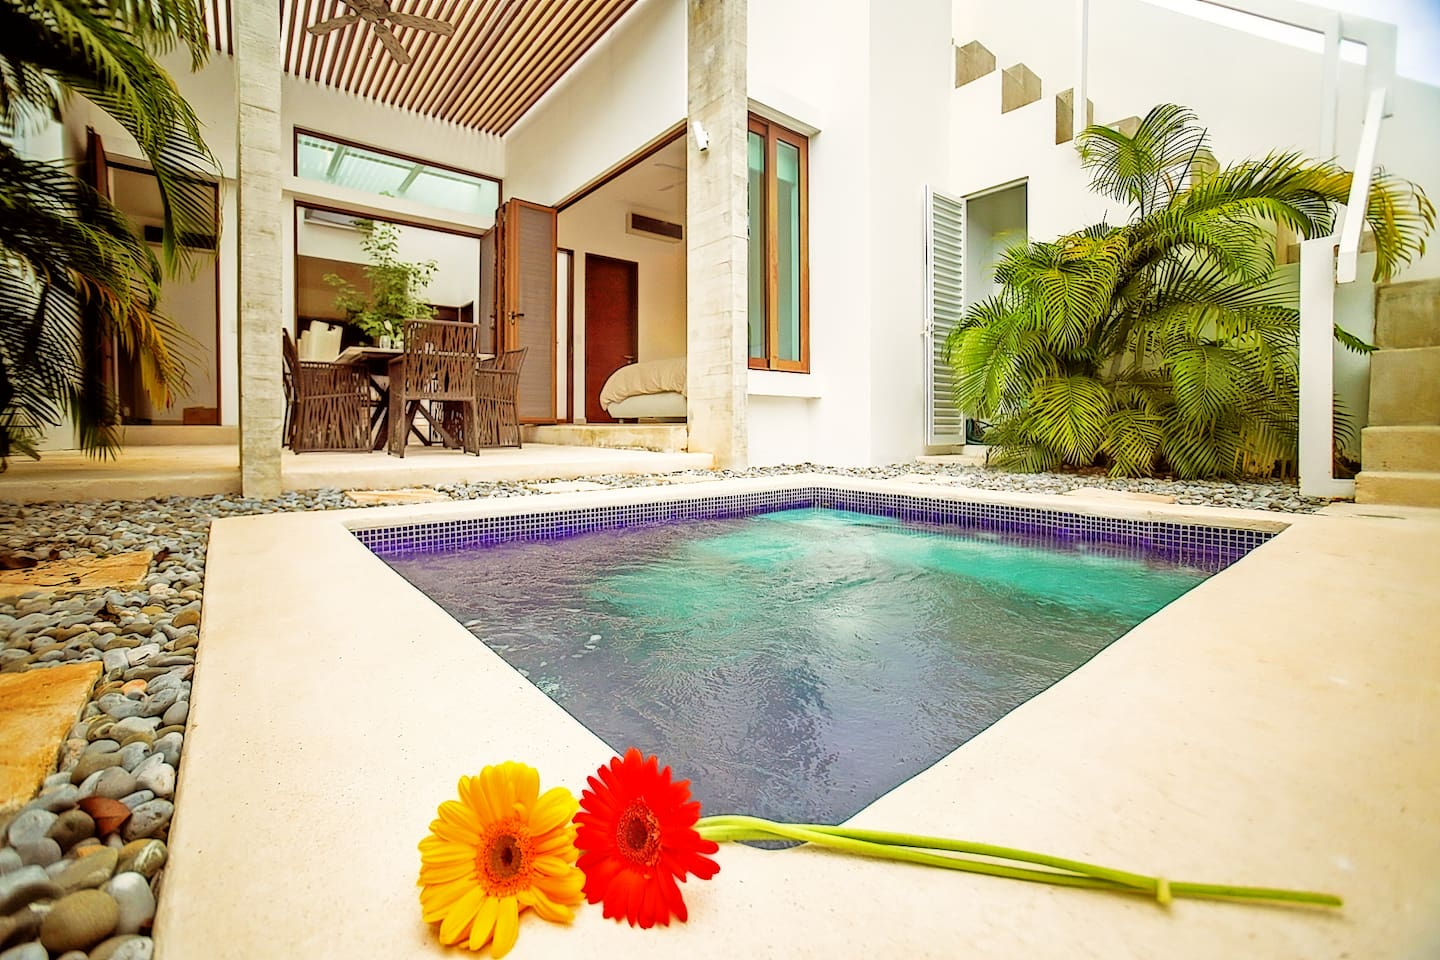 Spacious Townhome and perfect for families and big groups with a private plunge pool.